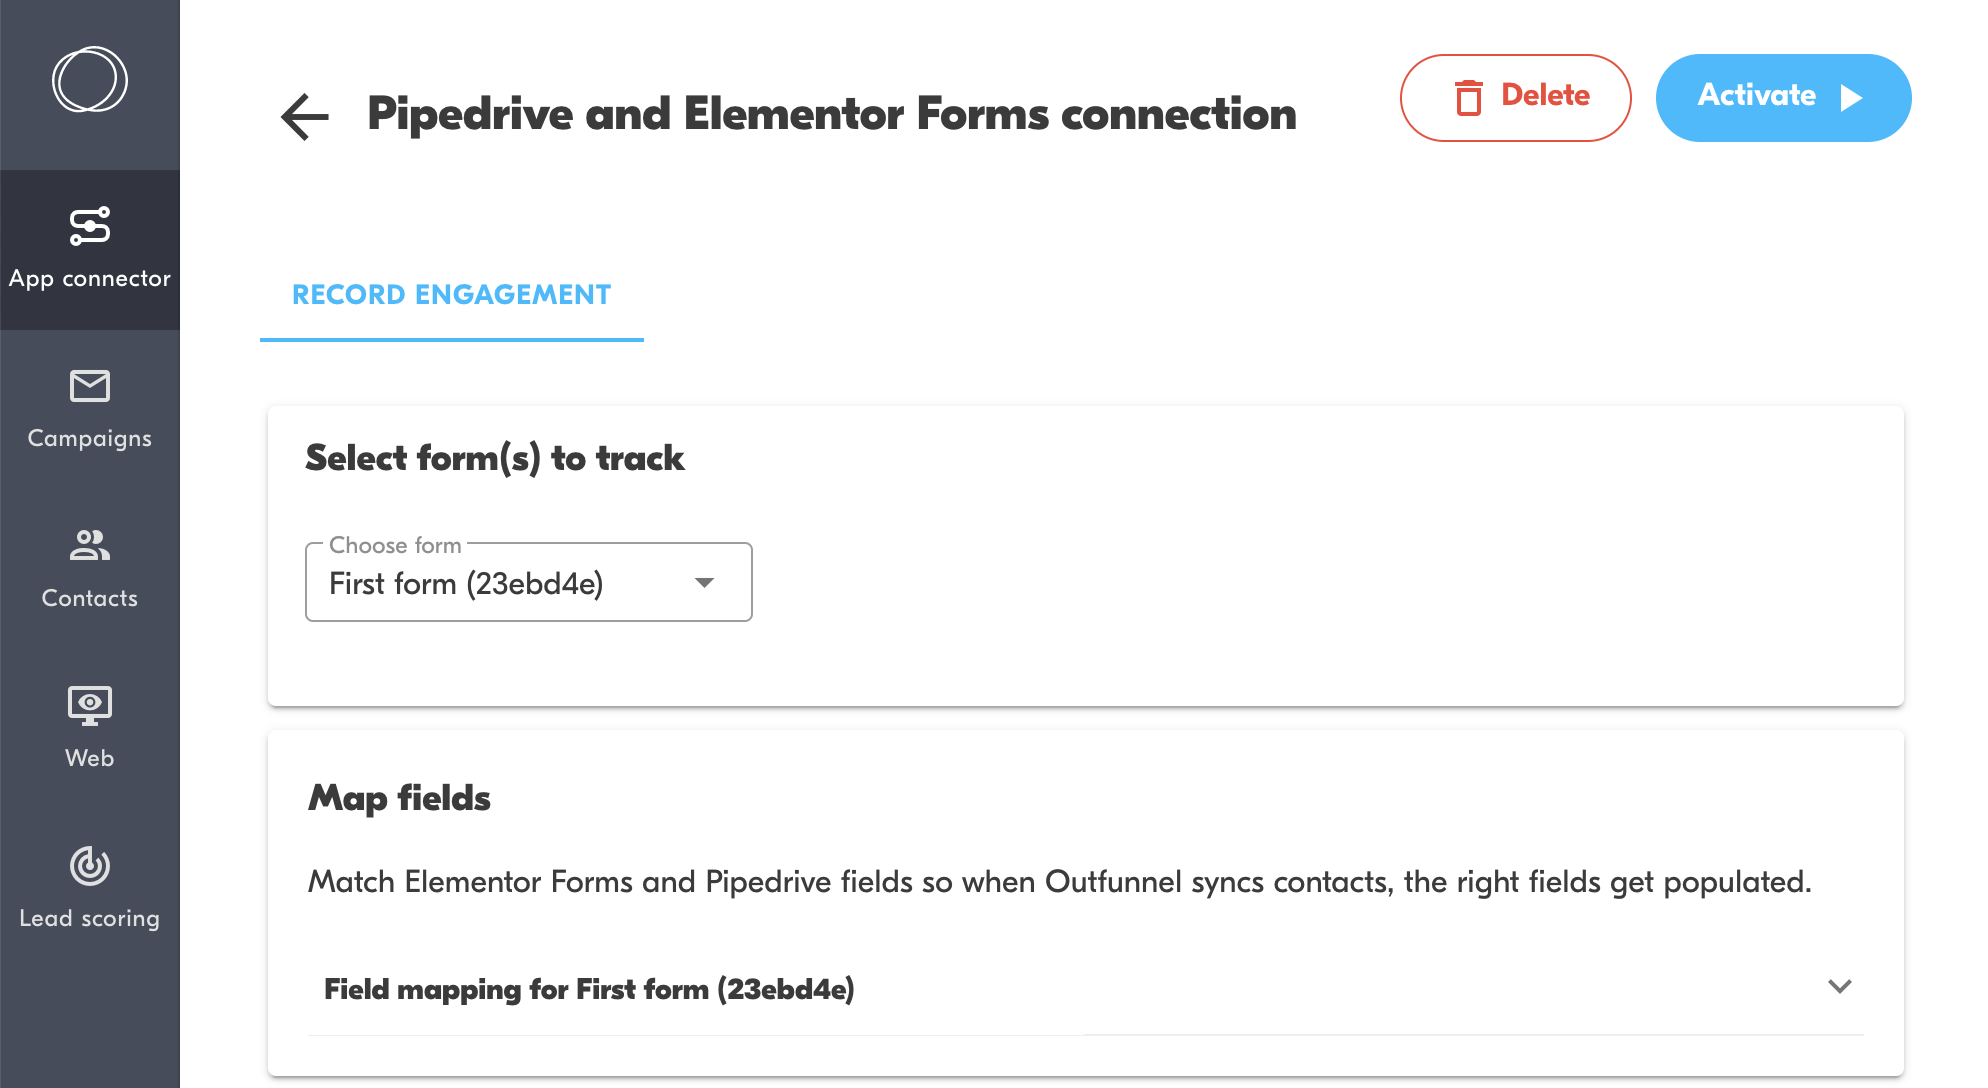 pipedrive elementor forms integration